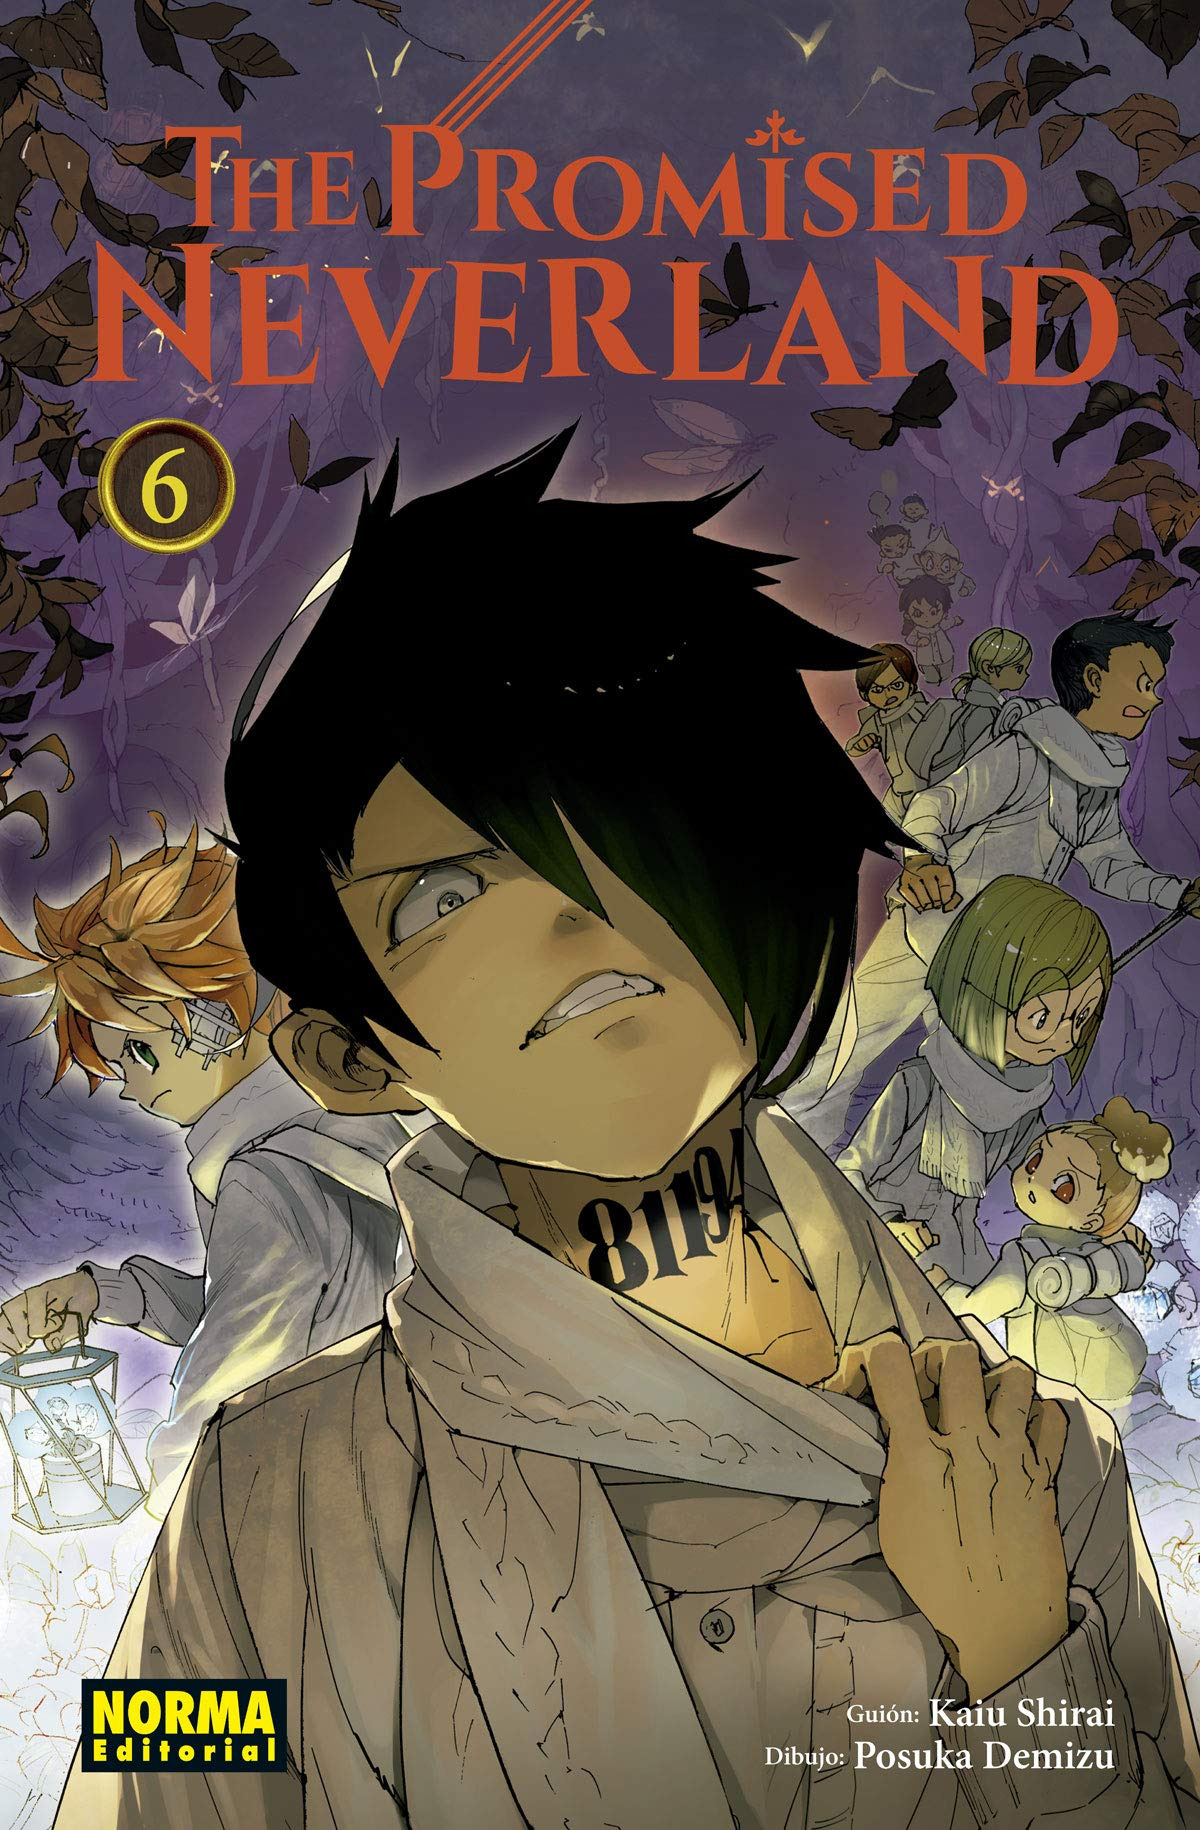 THE PROMISED NEVERLAND 6 9788467934557